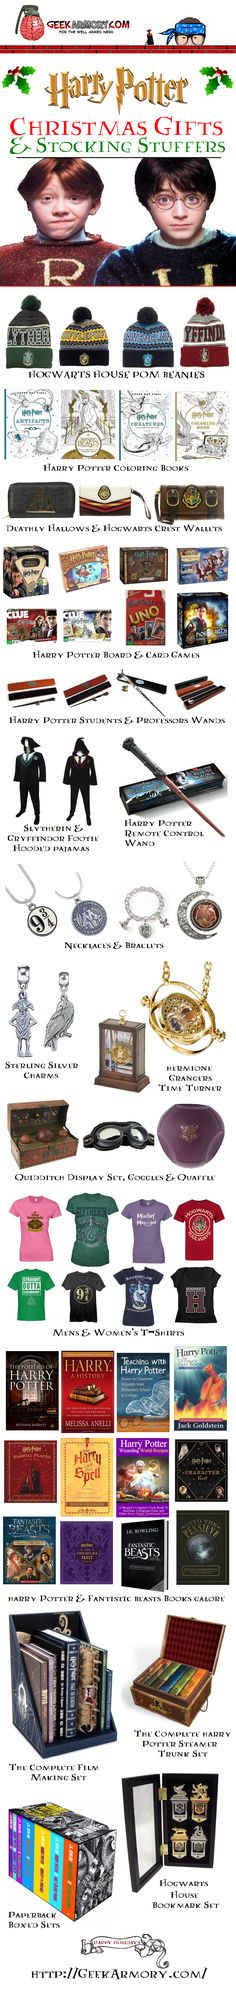 Harry Potter Christmas Gifts and Stocking Stuffers